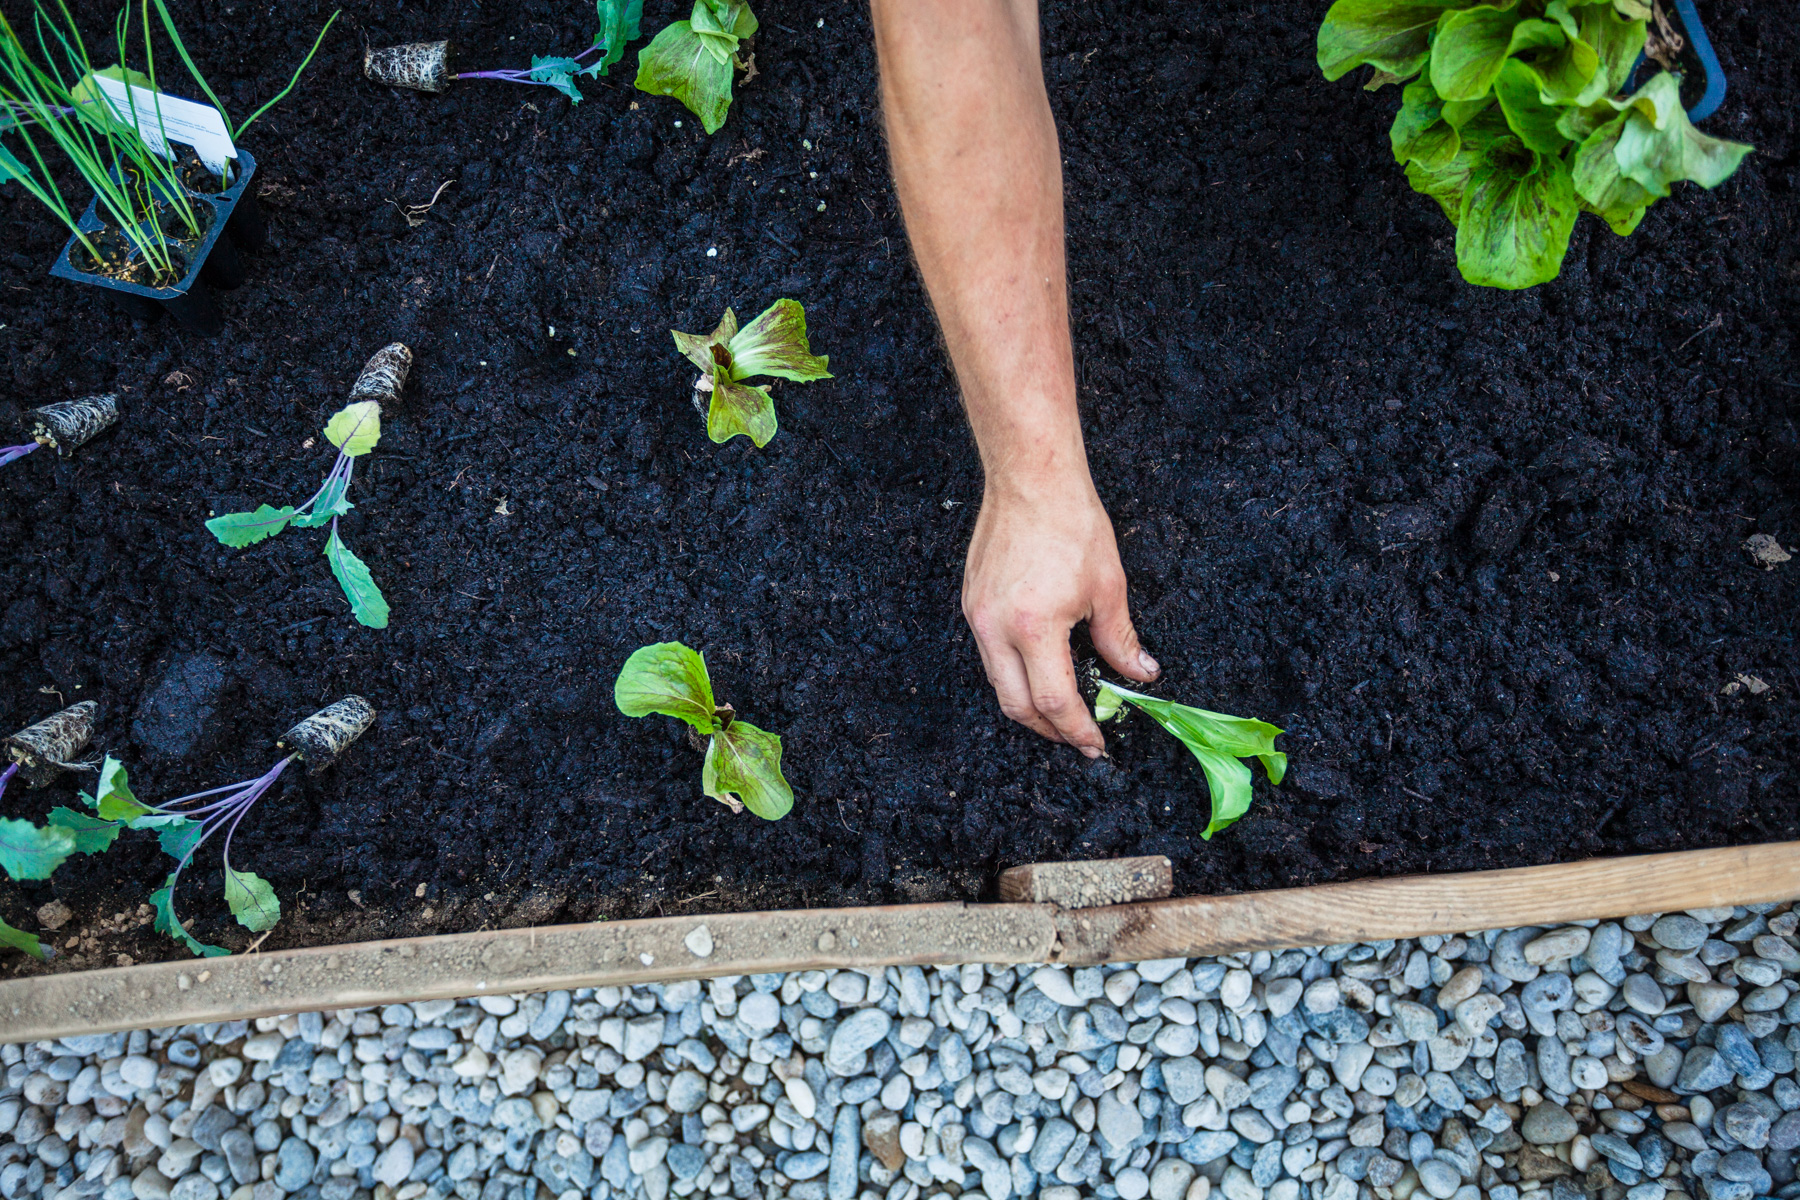 ©TomWoollard_OBI_editorial-lifestyle-gardening-hand-planting-young-plant-in-soil-garden-bed.jpg